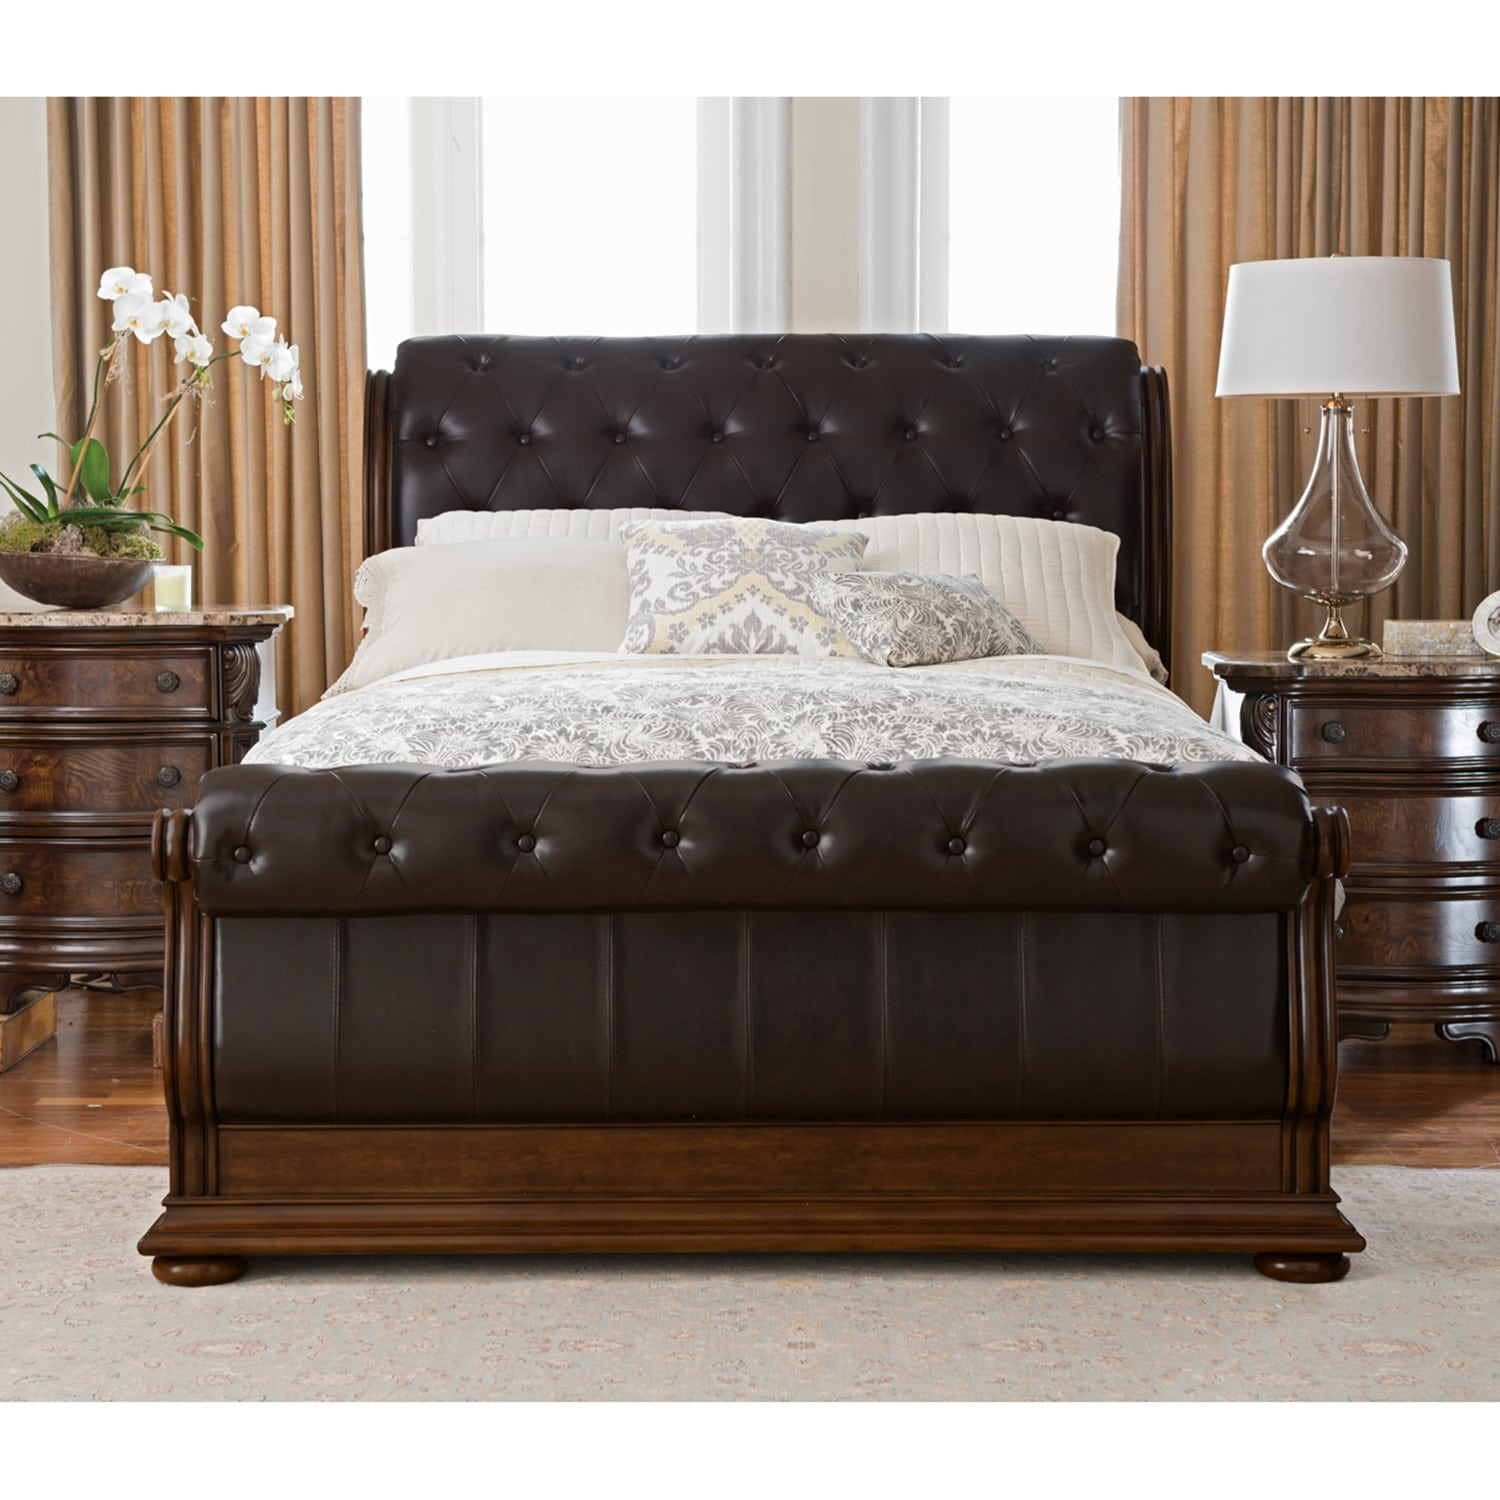 Sleigh Bedroom Sets King monticello 5-piece king sleigh bedroom set - pecan | value city